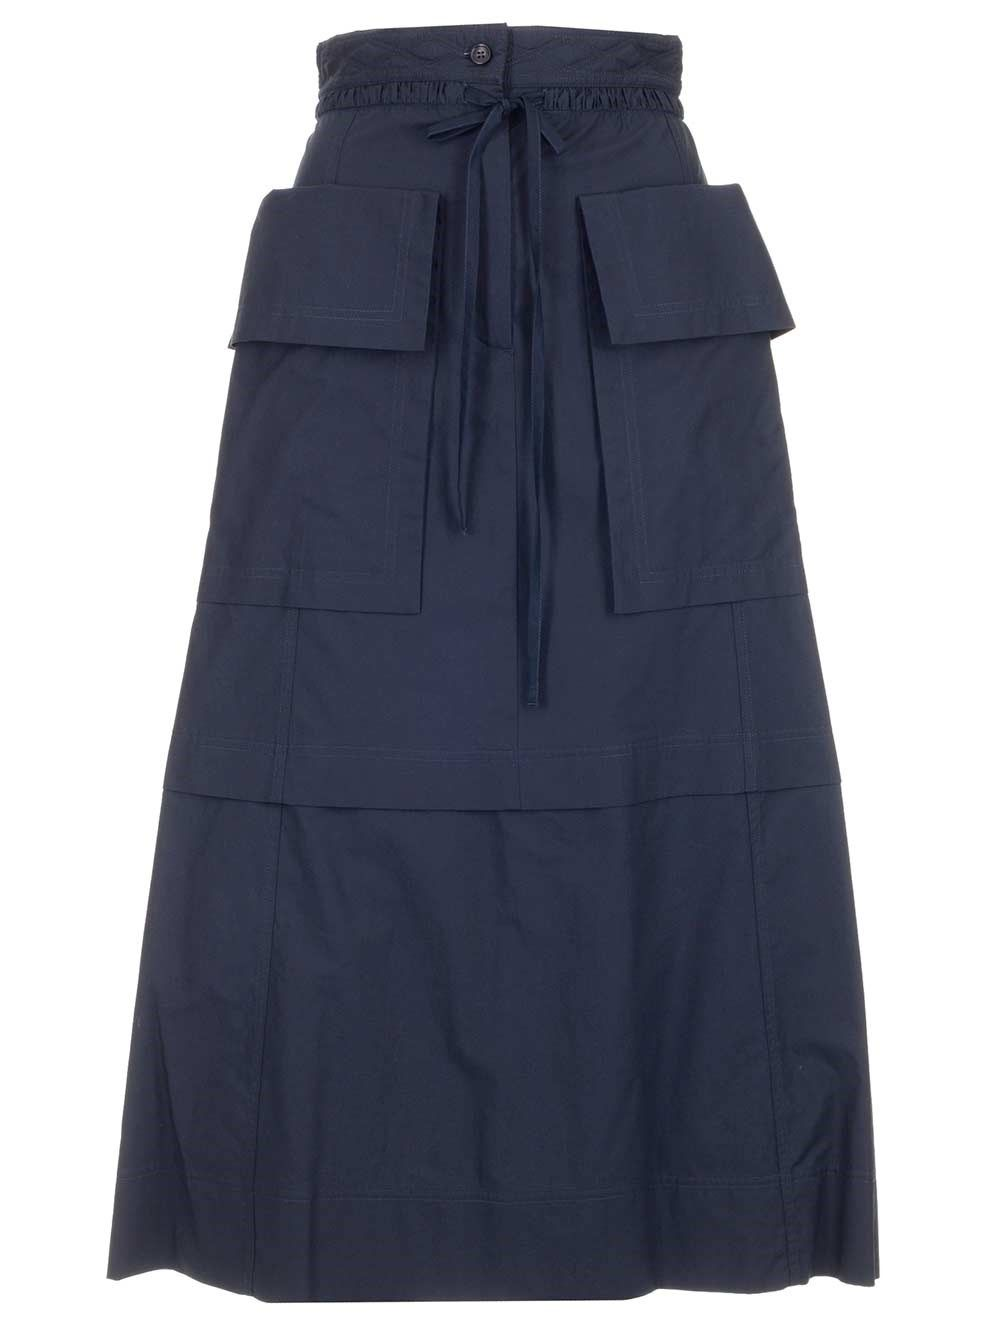 See By Chloé Midi skirts SEE BY CHLO WOMEN'S CHS21UJU010204C4 BLUE OTHER MATERIALS SKIRT